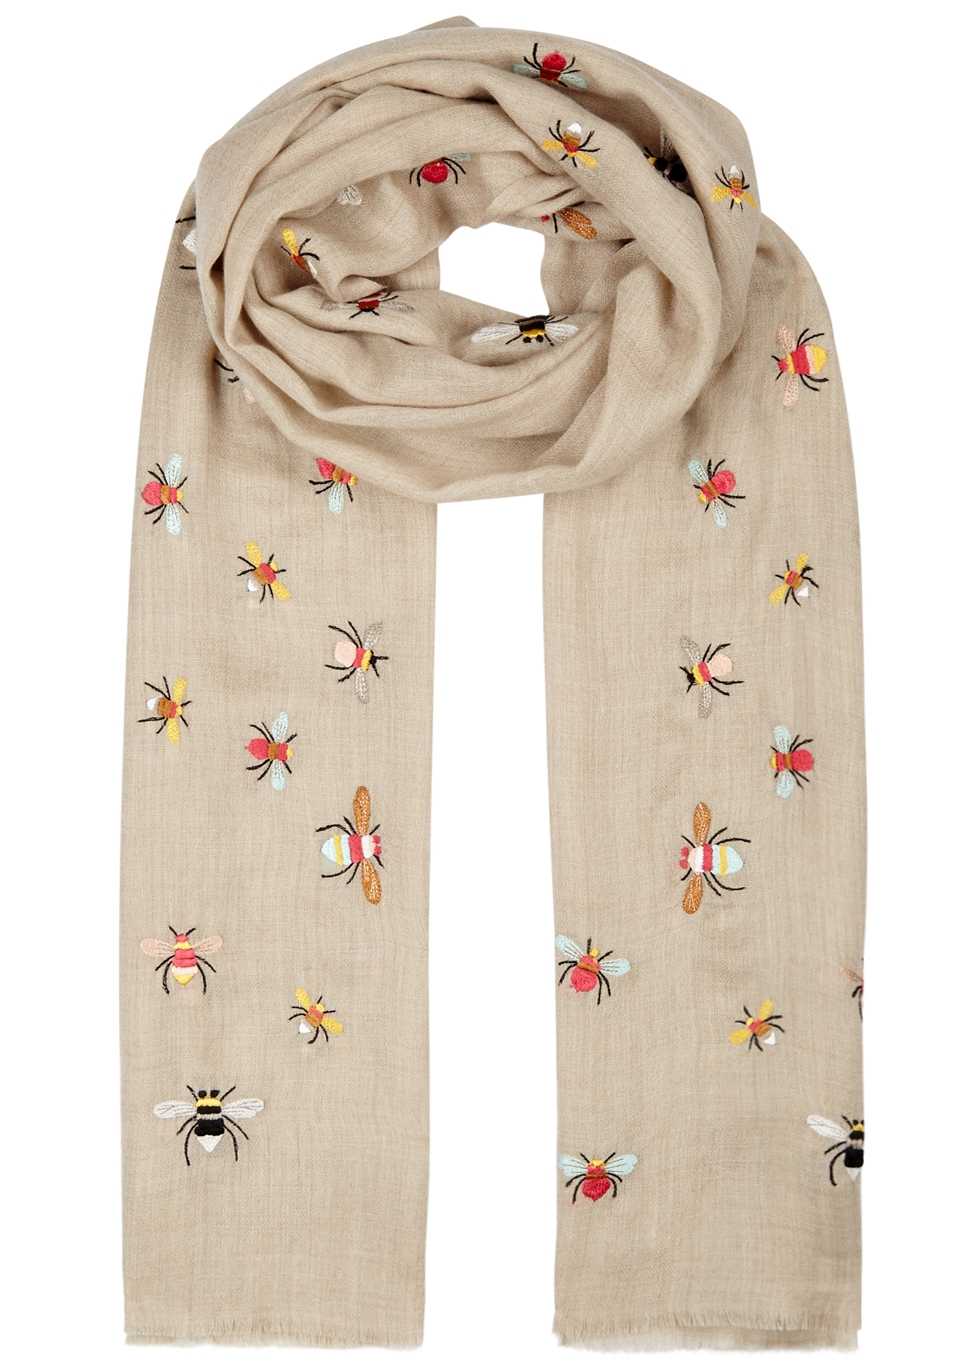 JANAVI LITTLE BEES EMBROIDERED CASHMERE SCARF